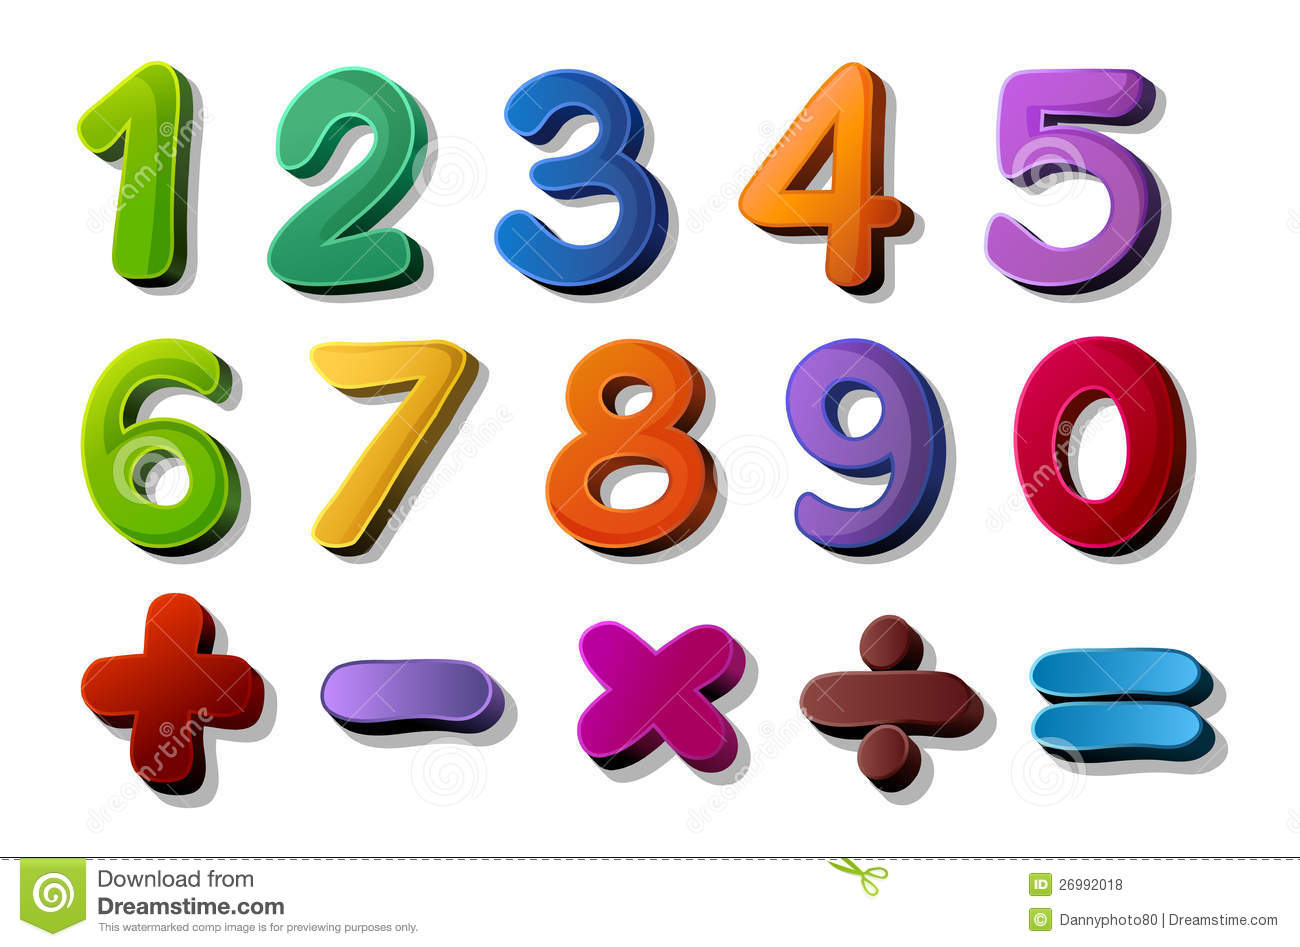 Royalty Free Stock Photos Numbers Maths Symbols Image26992018 on Collage Tree